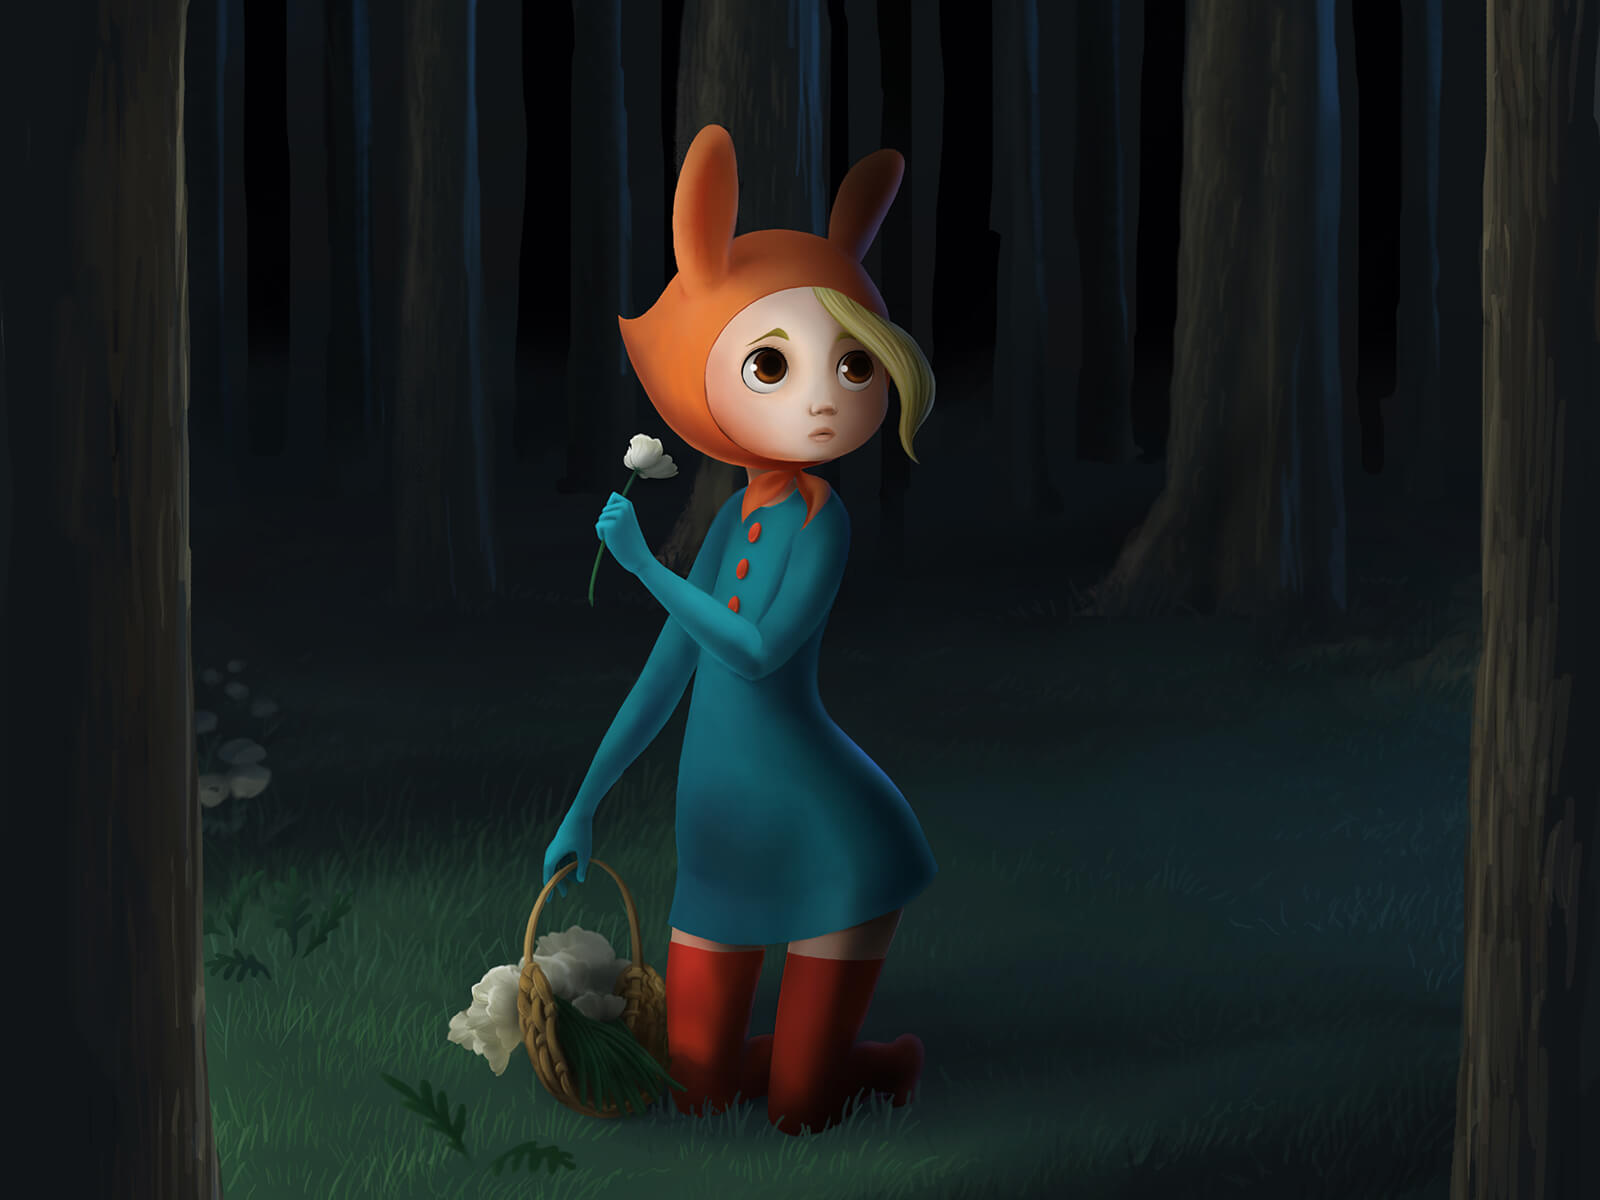 digital painting of a fearful girl in a dark forest wearing a red, bunny-eared bonnet and carrying a basket of white flowers